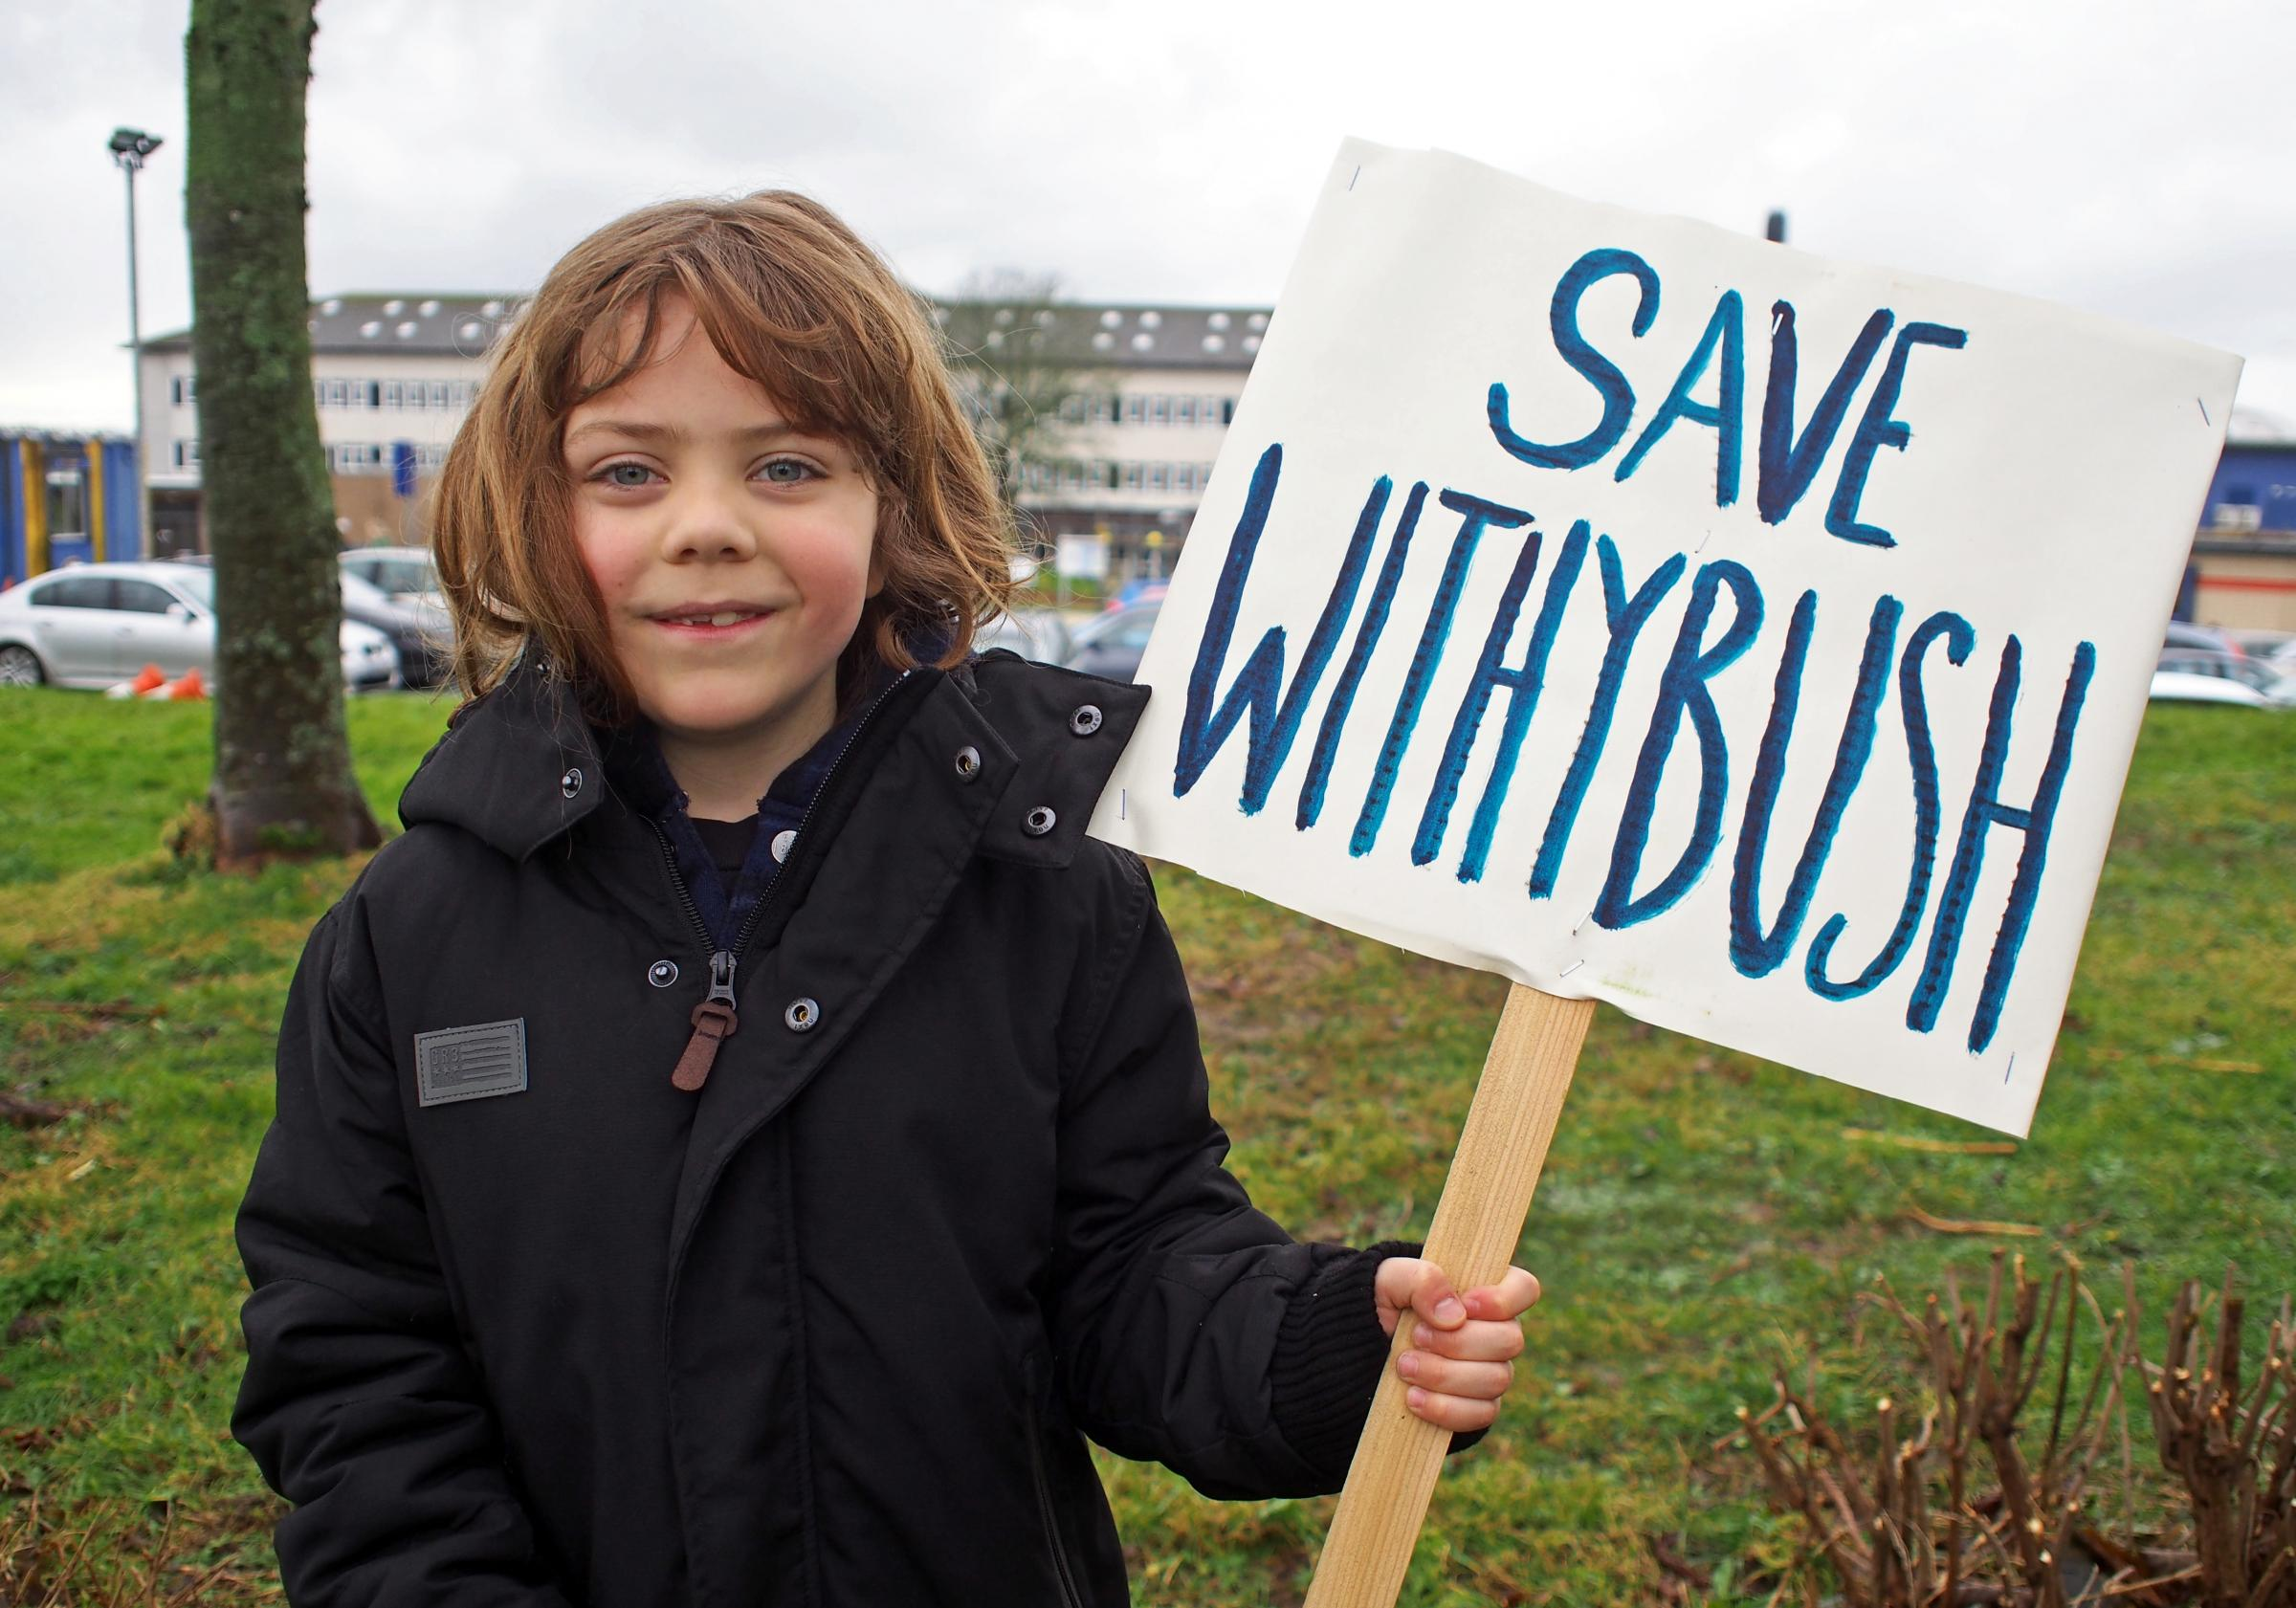 A call has gone out for every single person in Pembrokeshire to protest cuts to Withybush. PICTURE: Withybush Hospital